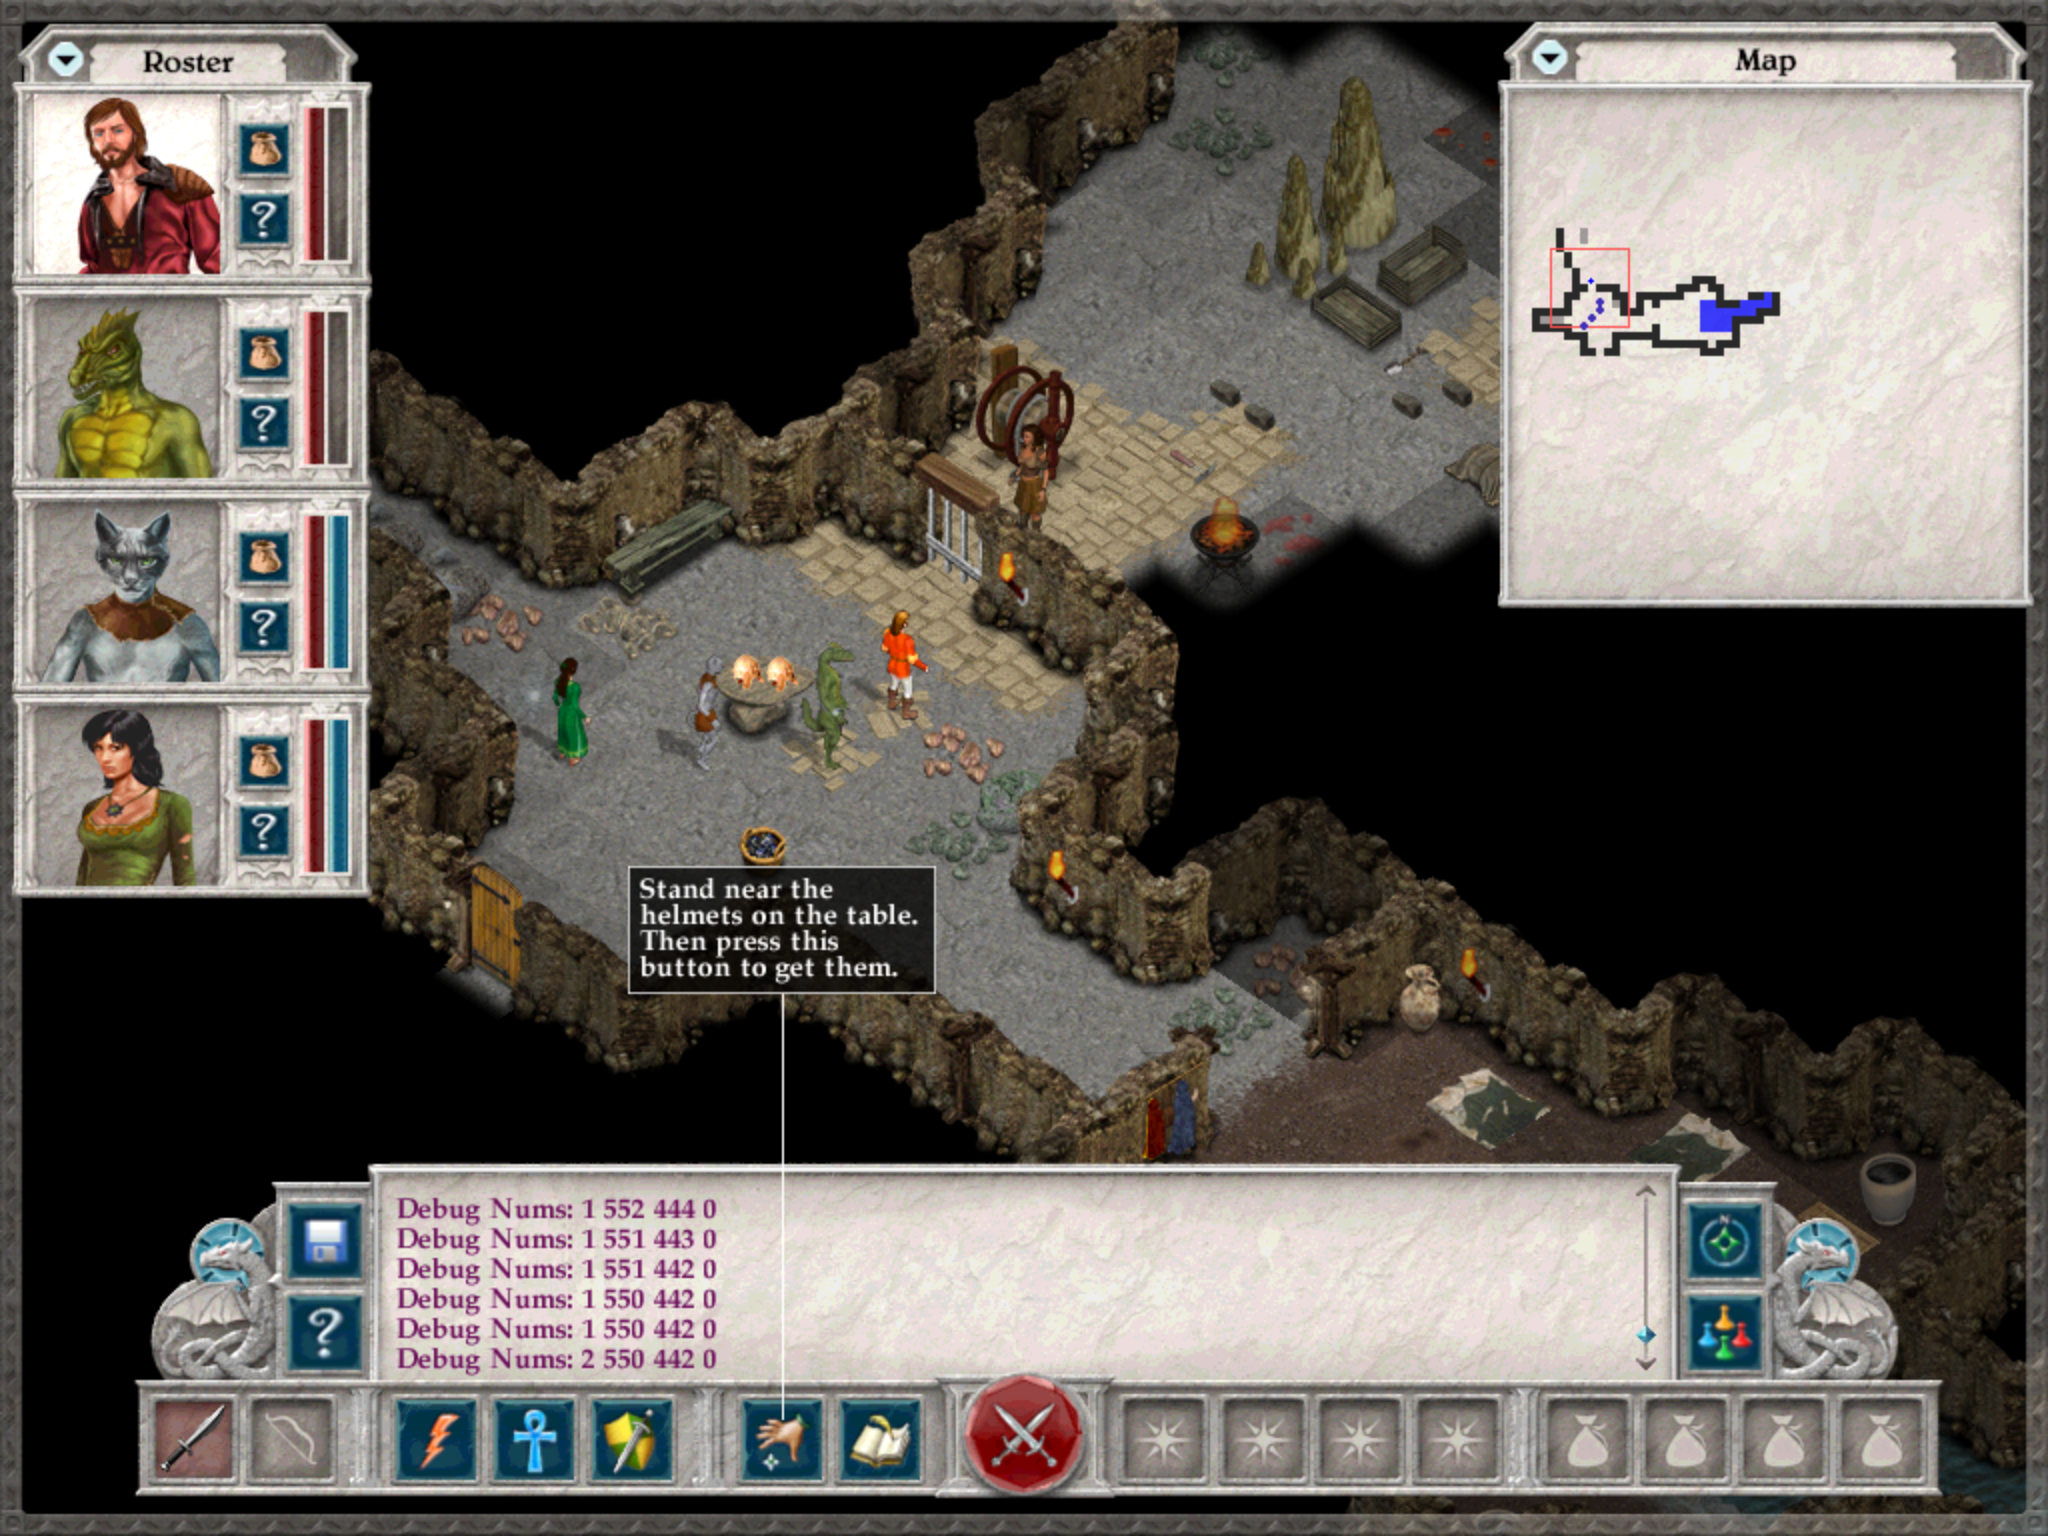 Apple doesn't care': Why one longtime indie role-playing